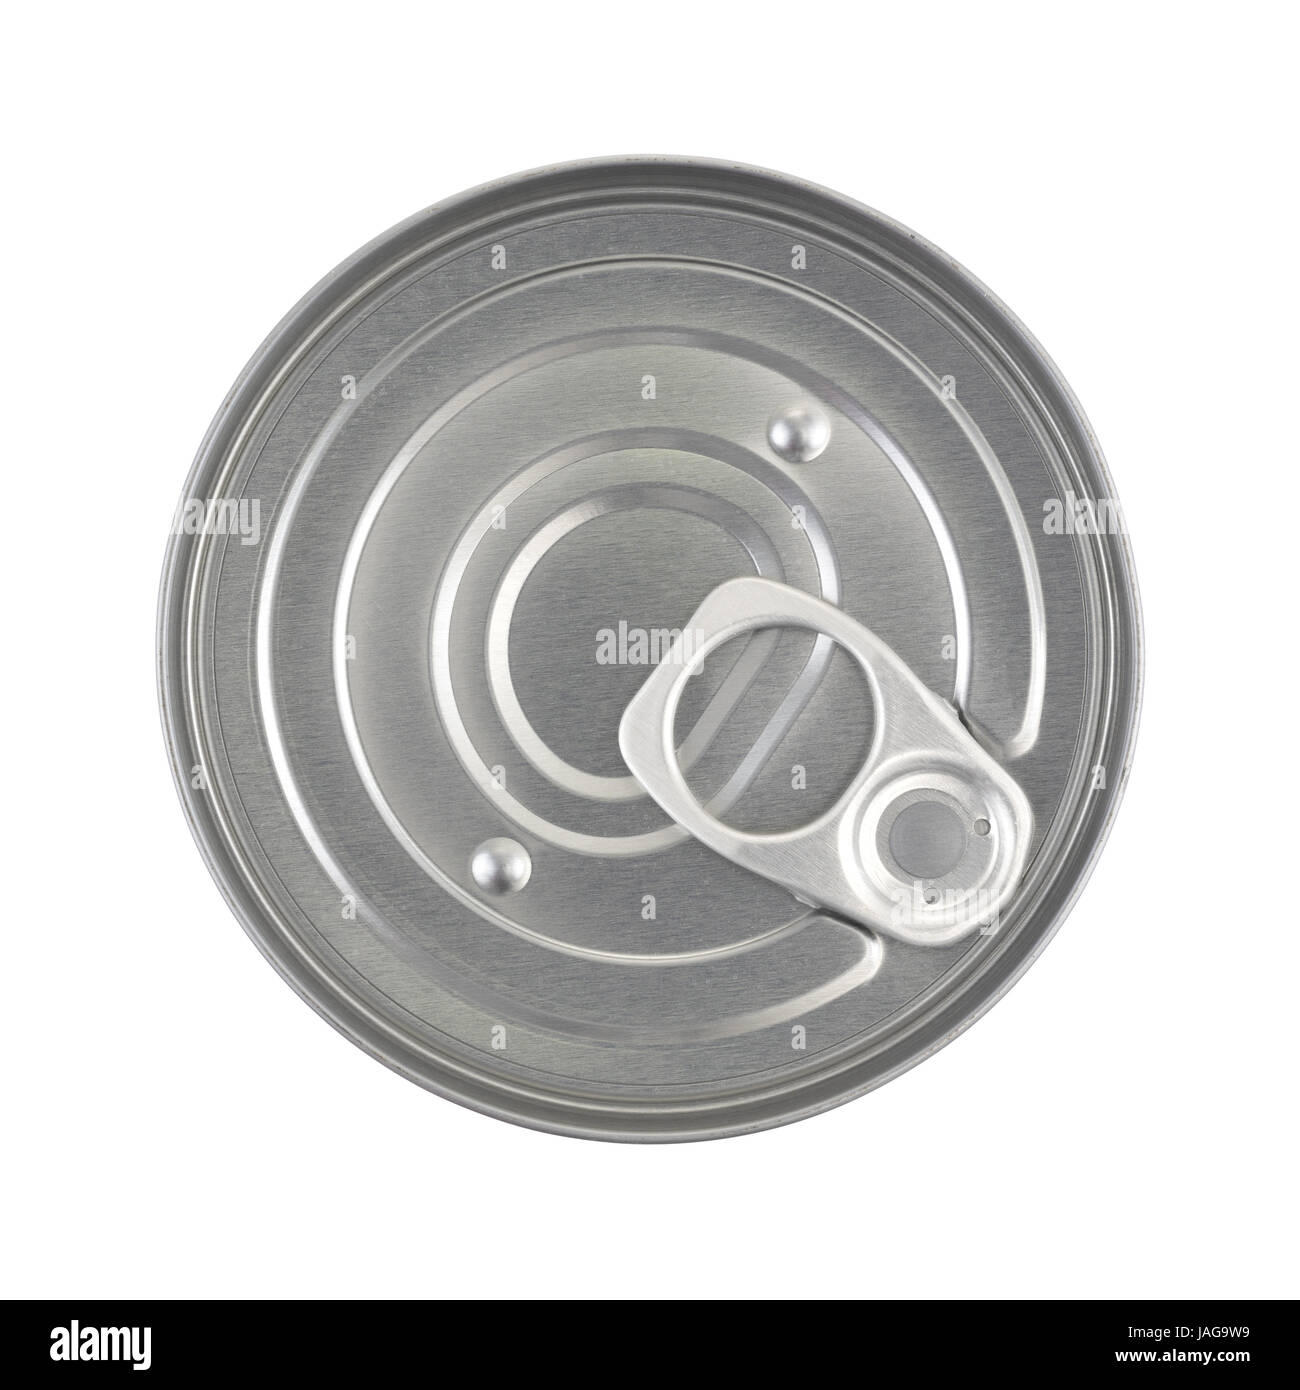 Top view of an unopened soup can with a pull tab isolated on a white background. - Stock Image